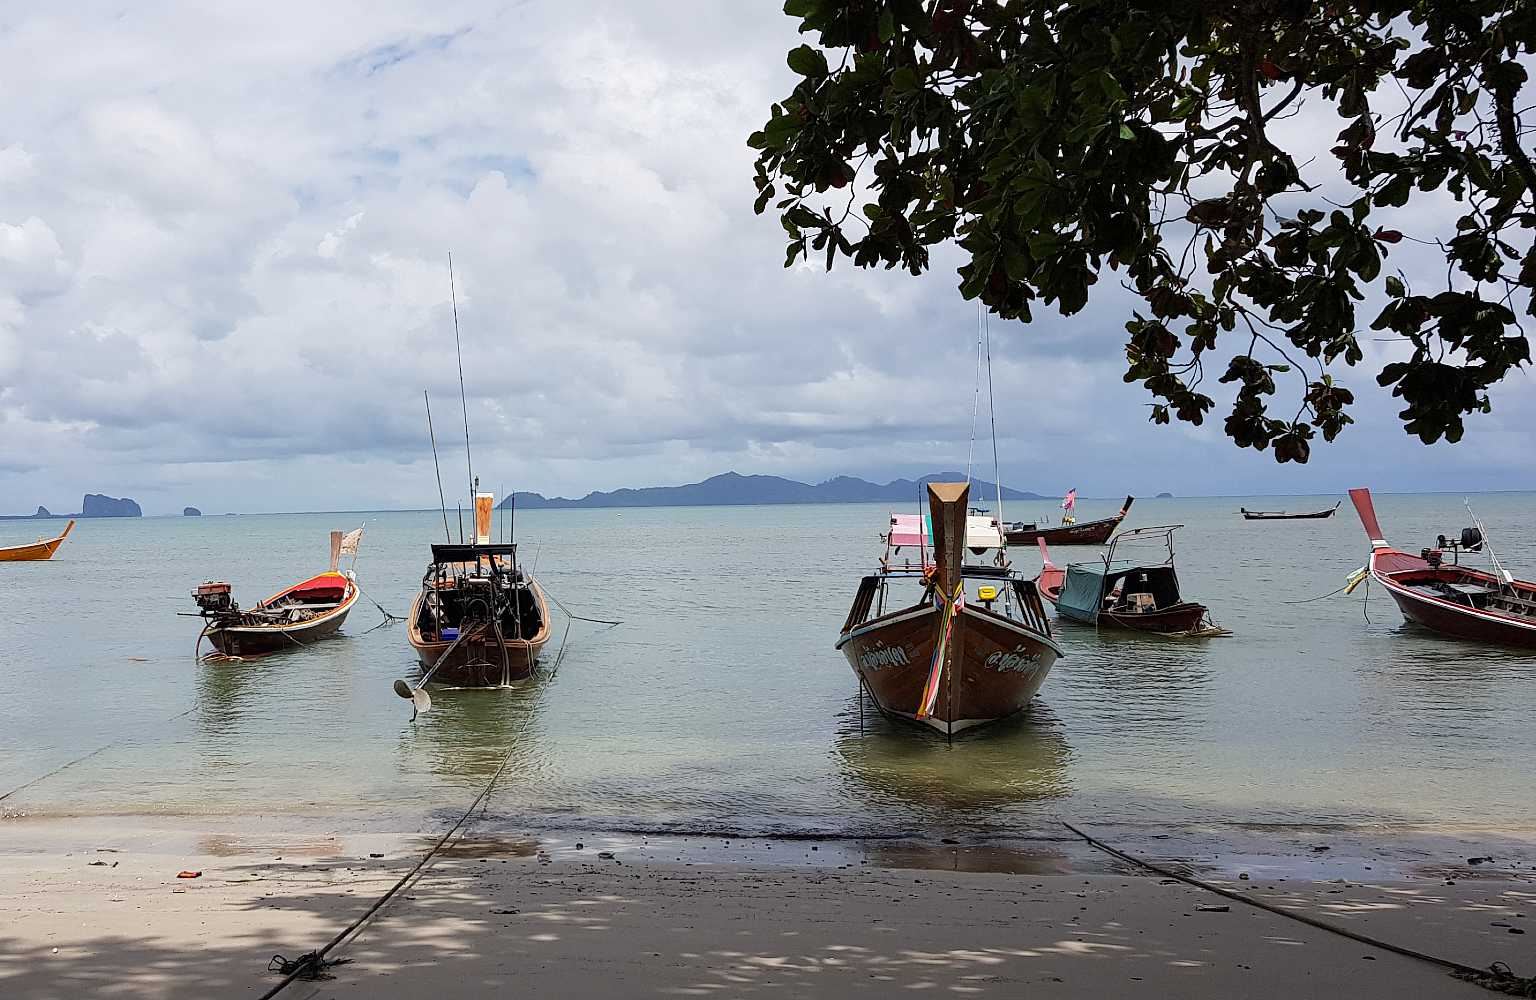 Longtail boats in sea off the coast of Koh Mook